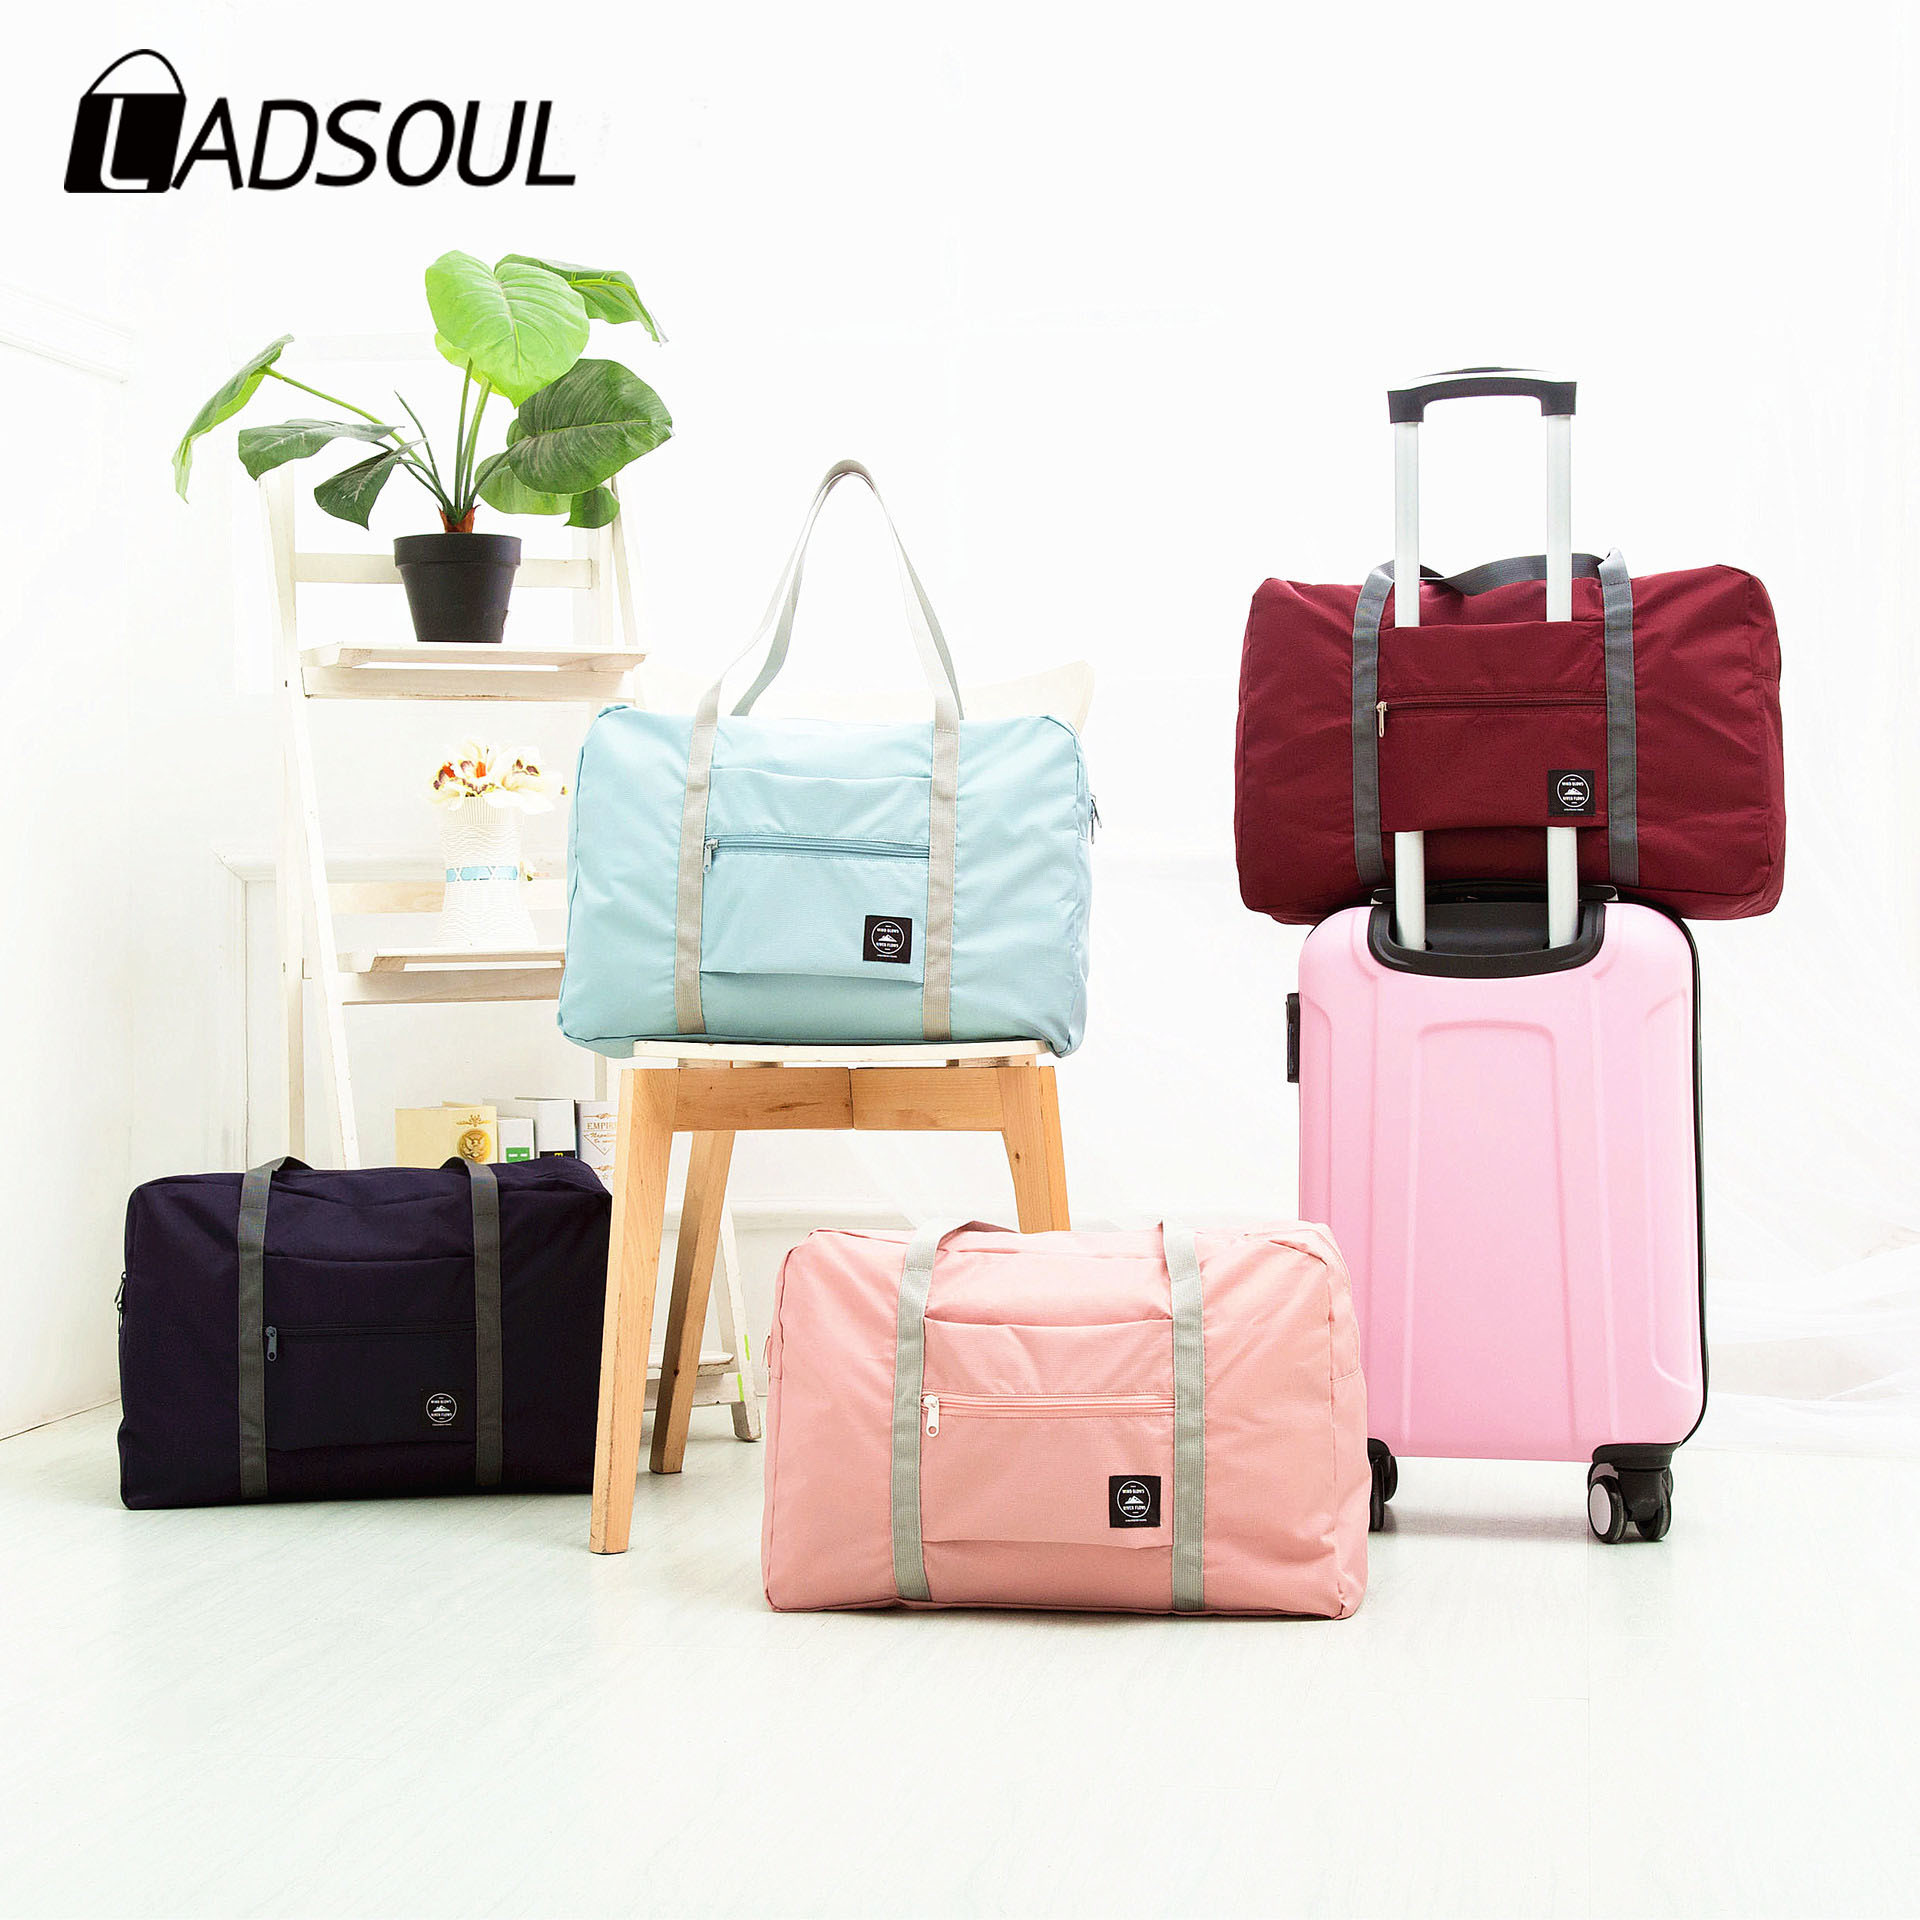 LADSOUL Men And Women Portable Travel Storage Bag Folding Trolley Bag Can Be Shoulder Portable Bag Large Capacity